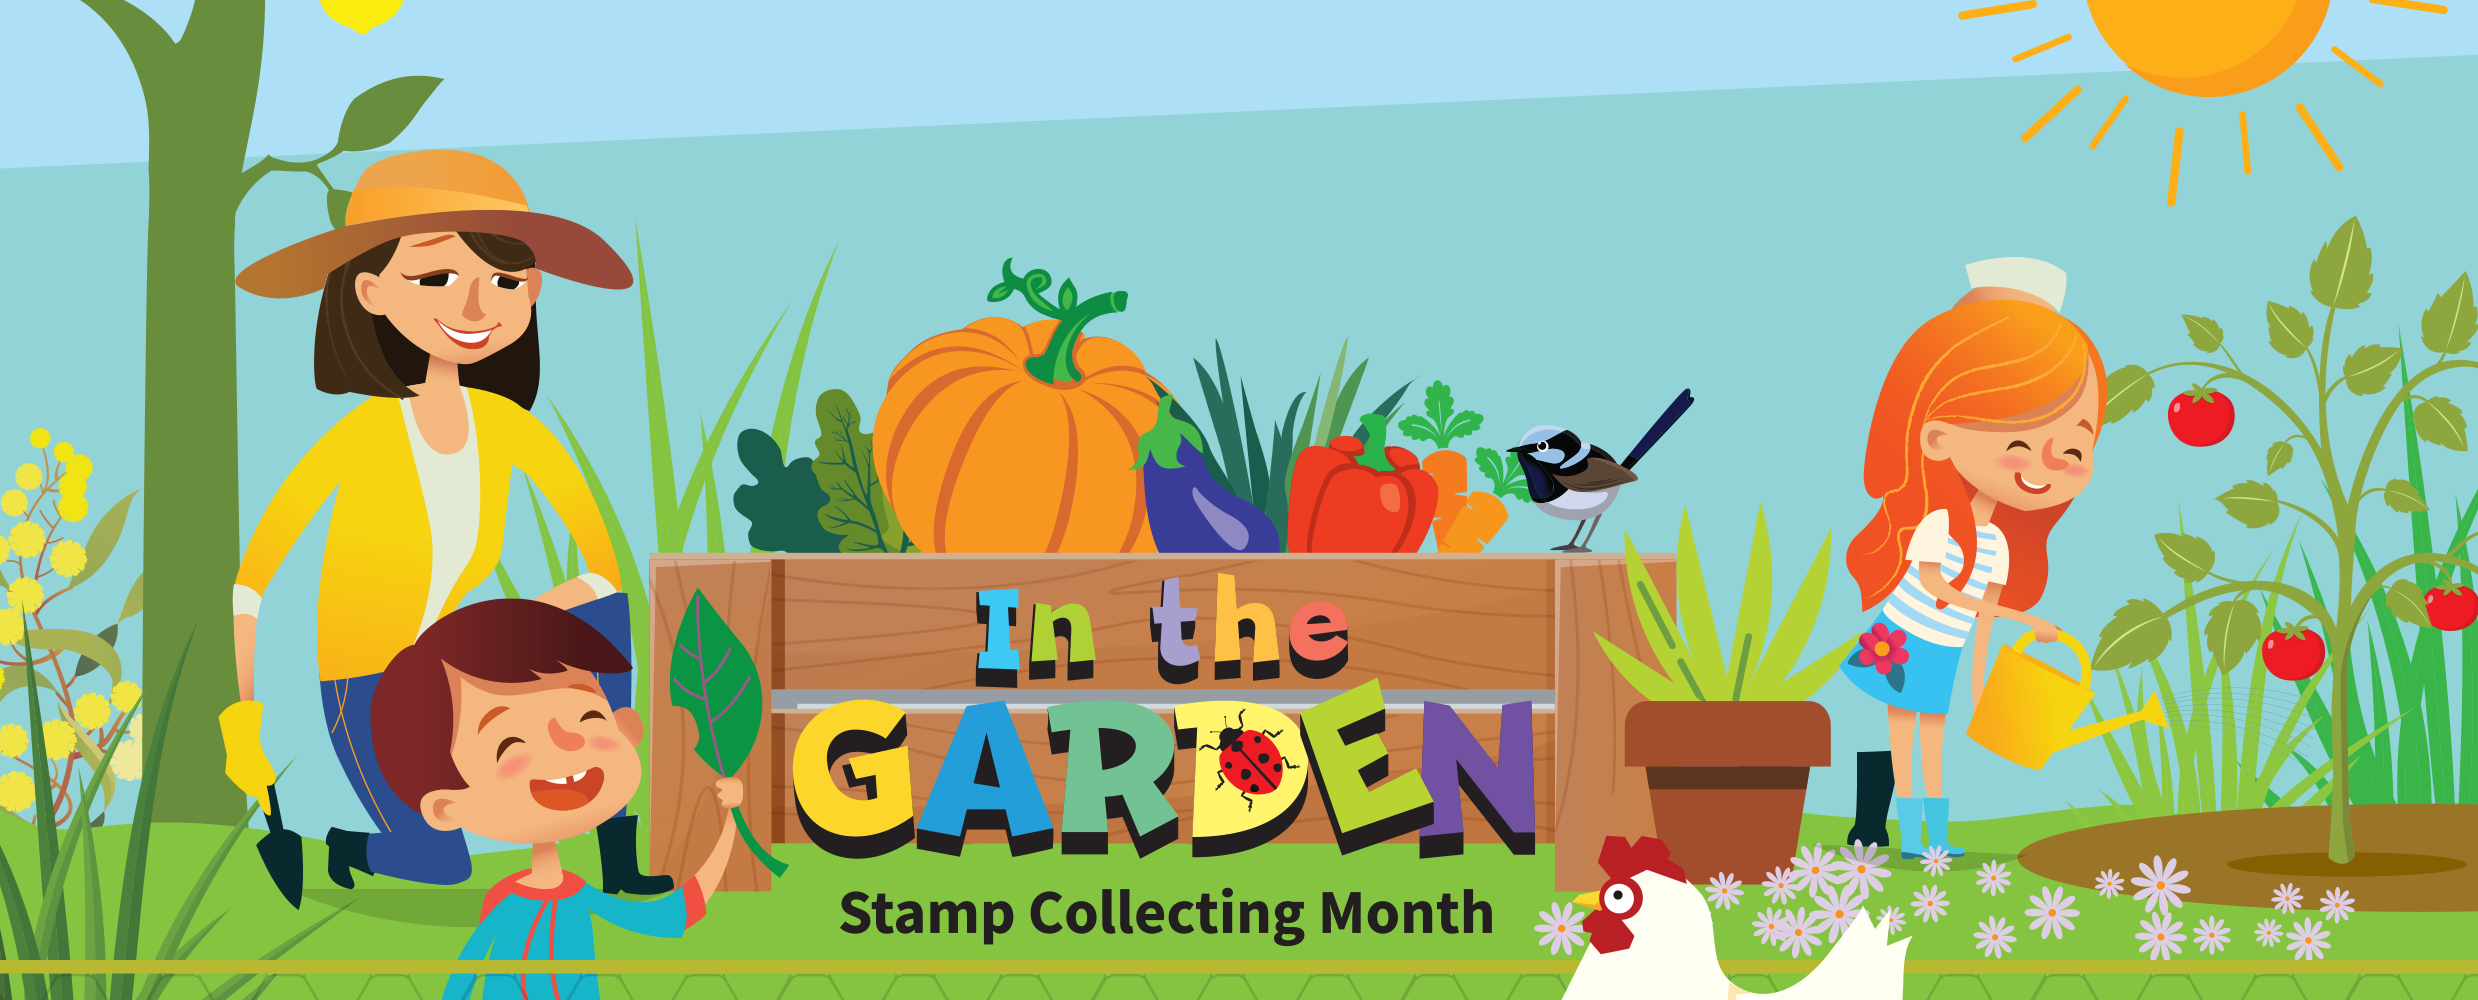 Explore our sustainable garden during Stamp Collecting Month 2019